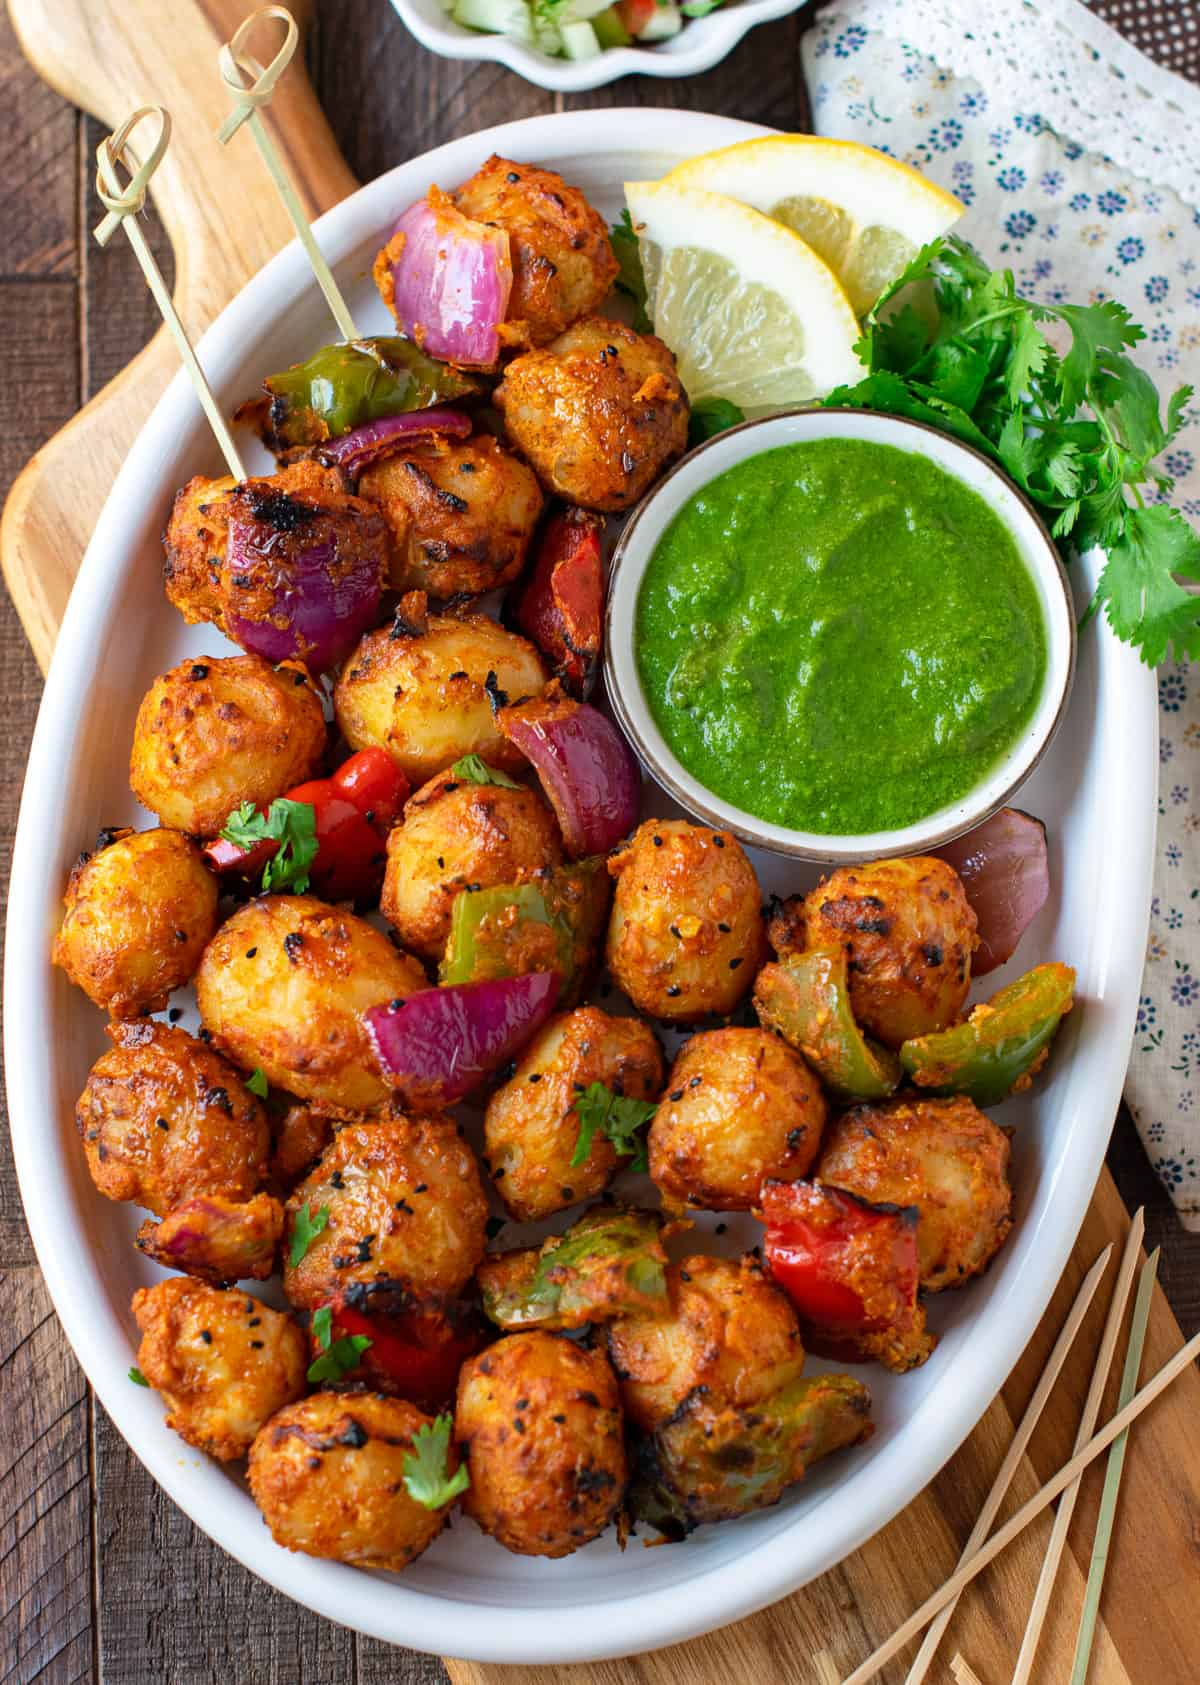 Achari aloo tikka served in a white plate with green chutney